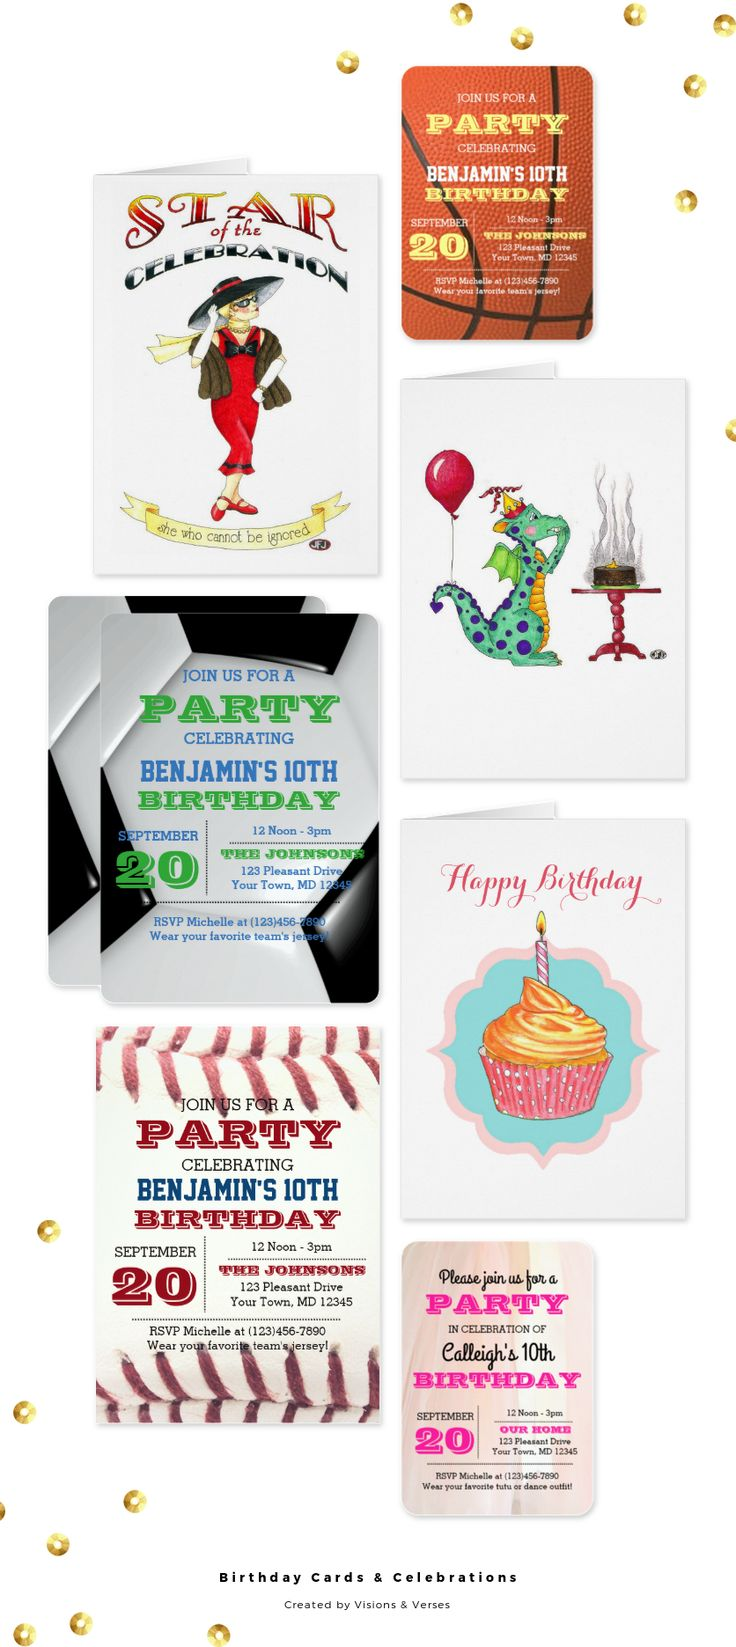 A collection of birthday cards and birthday party essentials!